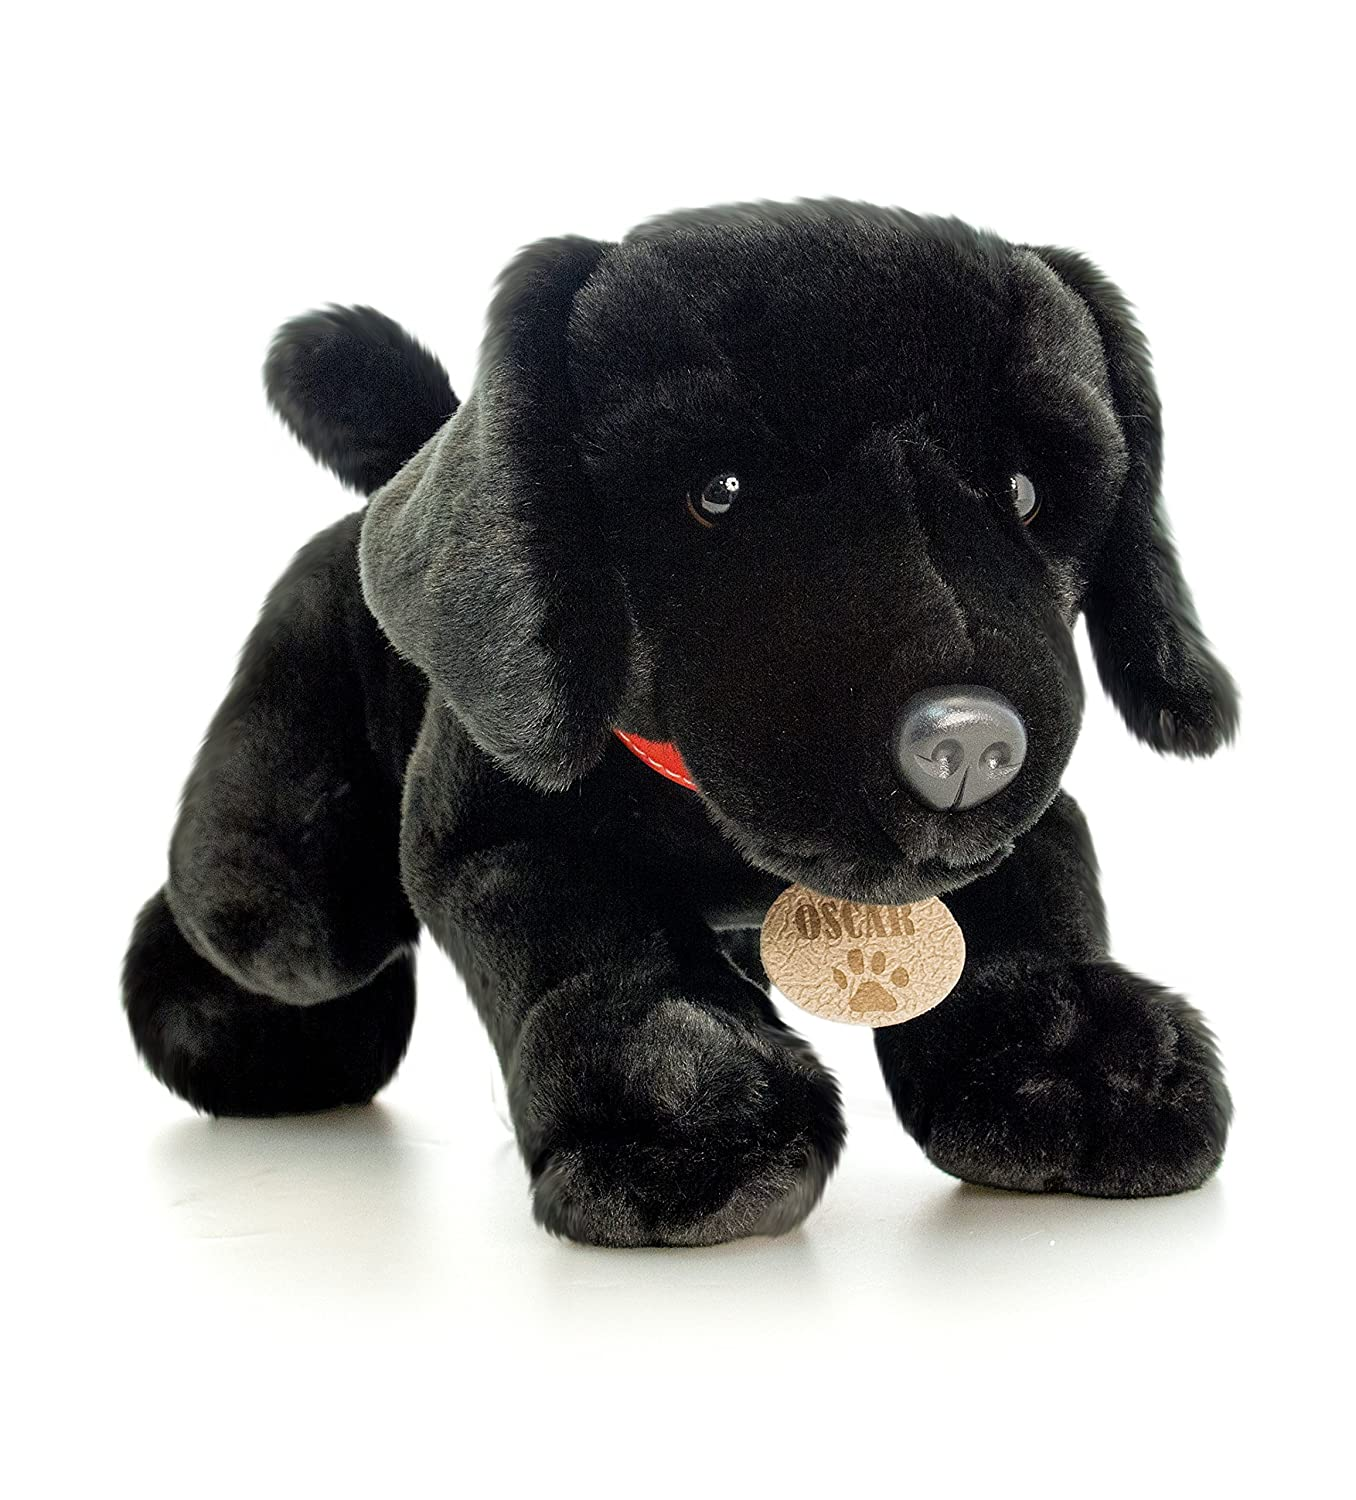 35cm Keel Toys Black Labrador Soft Toy Dog OSCAR EXCLUSIVE TO